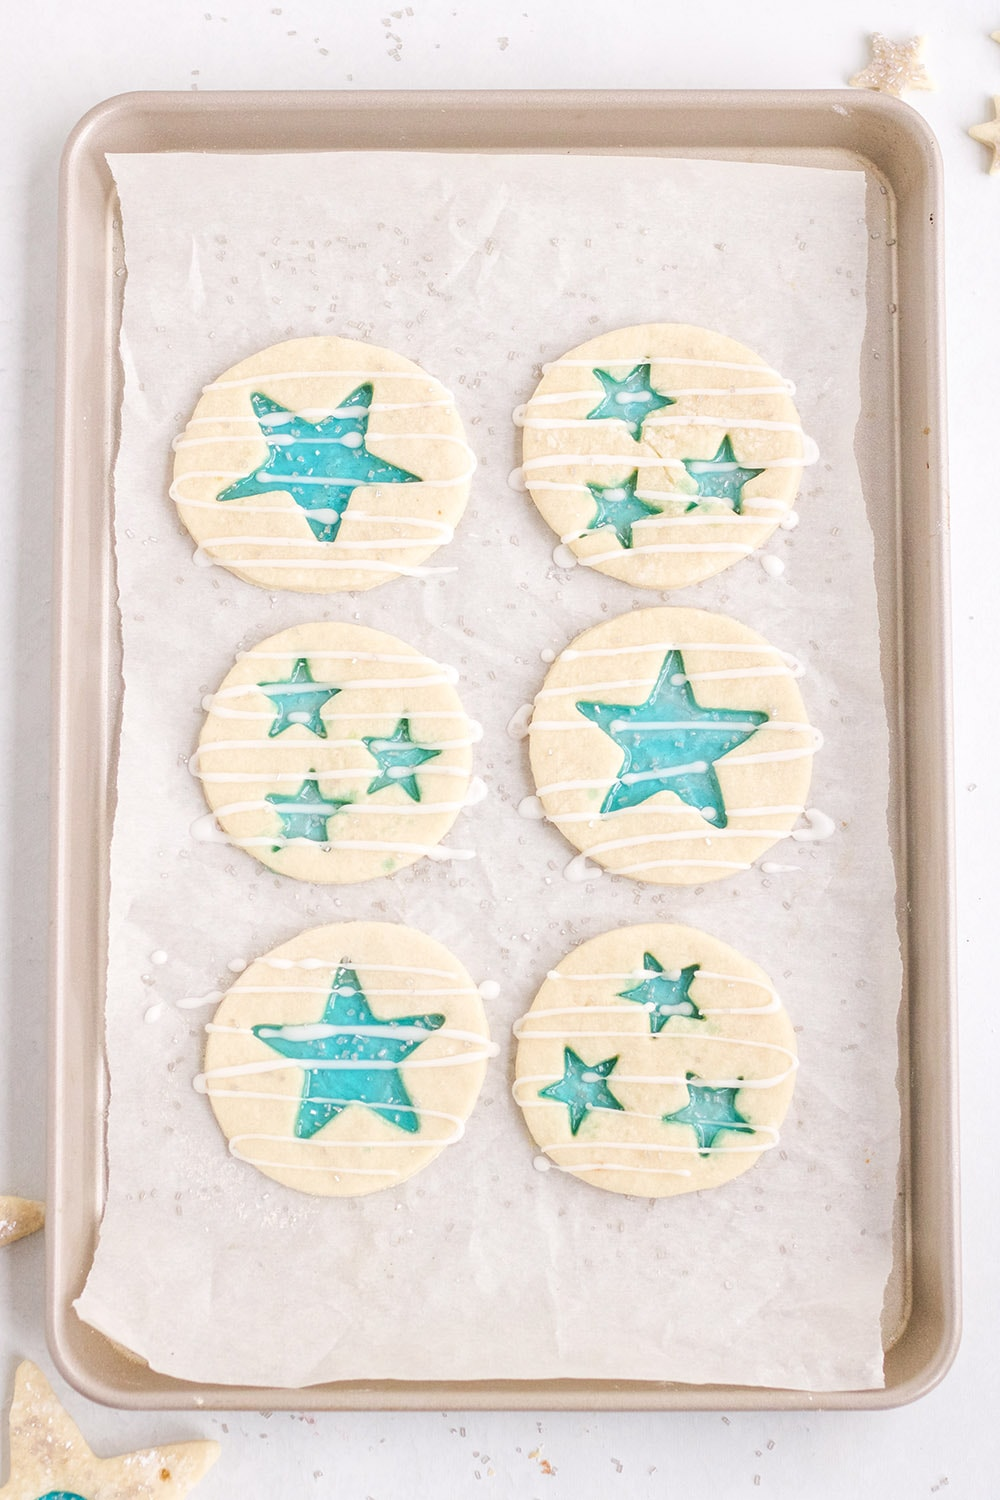 Star stained-glass cookies on a baking sheet ready for the oven.